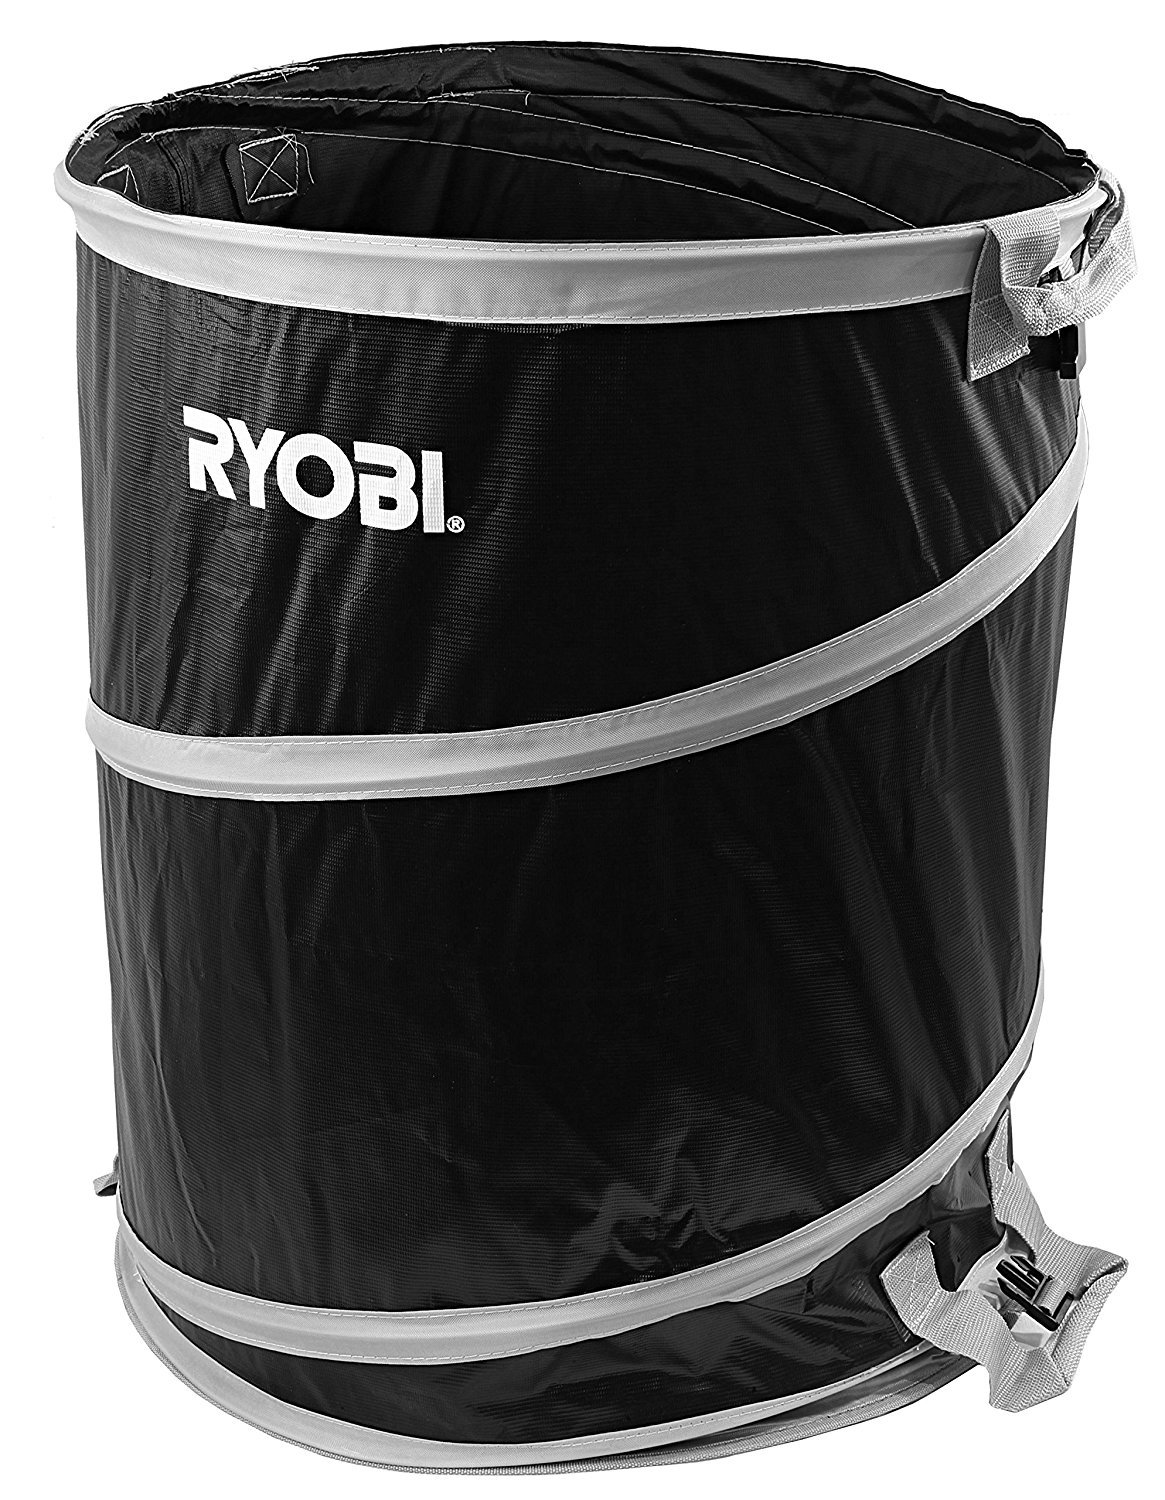 Ryobi 40 Gallon Collapsible and Reusable Lawn and Garden Bag with Quadruple Hand Strap System (21.5 Inches Wide x 26 Inches Tall) by Ryobi